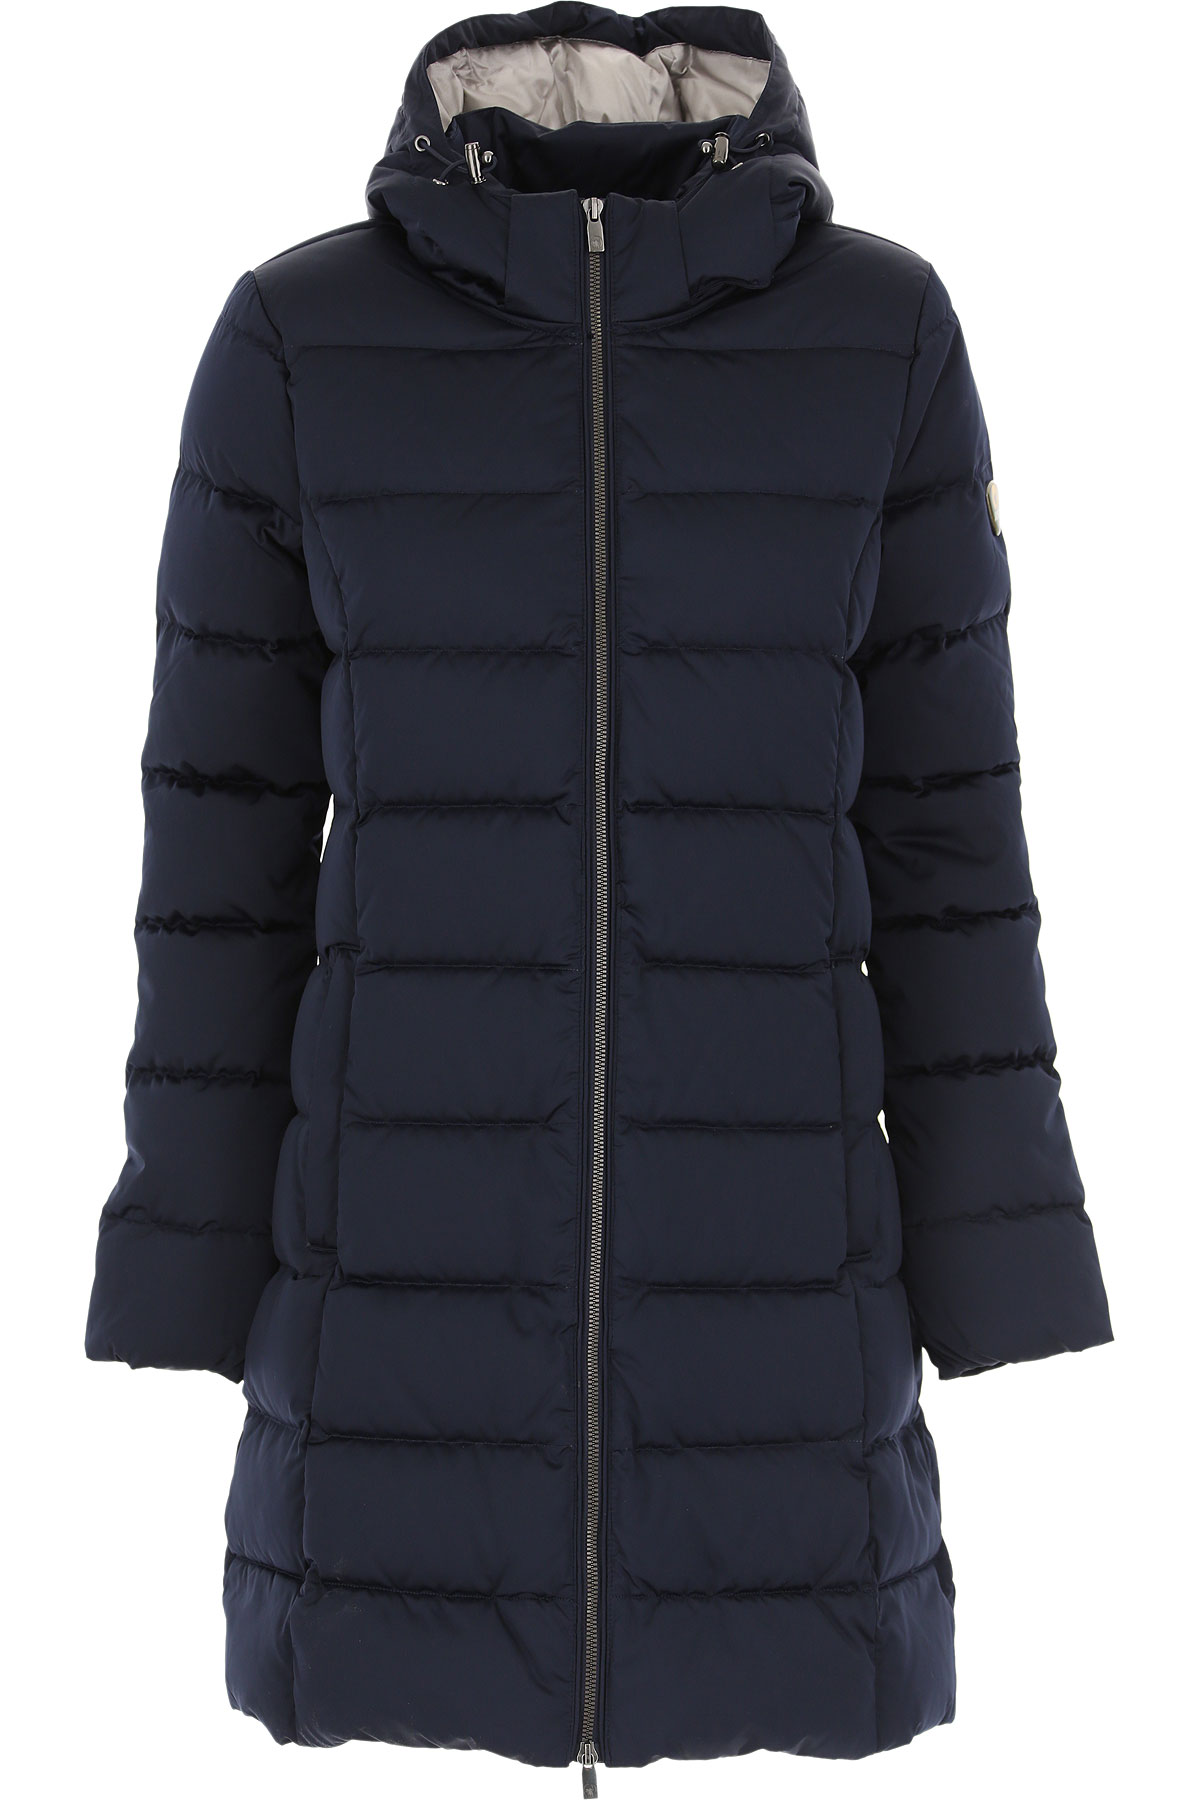 Ciesse Piumini Down Jacket for Women, Puffer Ski Jacket On Sale, Navy Blue, Down, 2019, 10 4 6 8